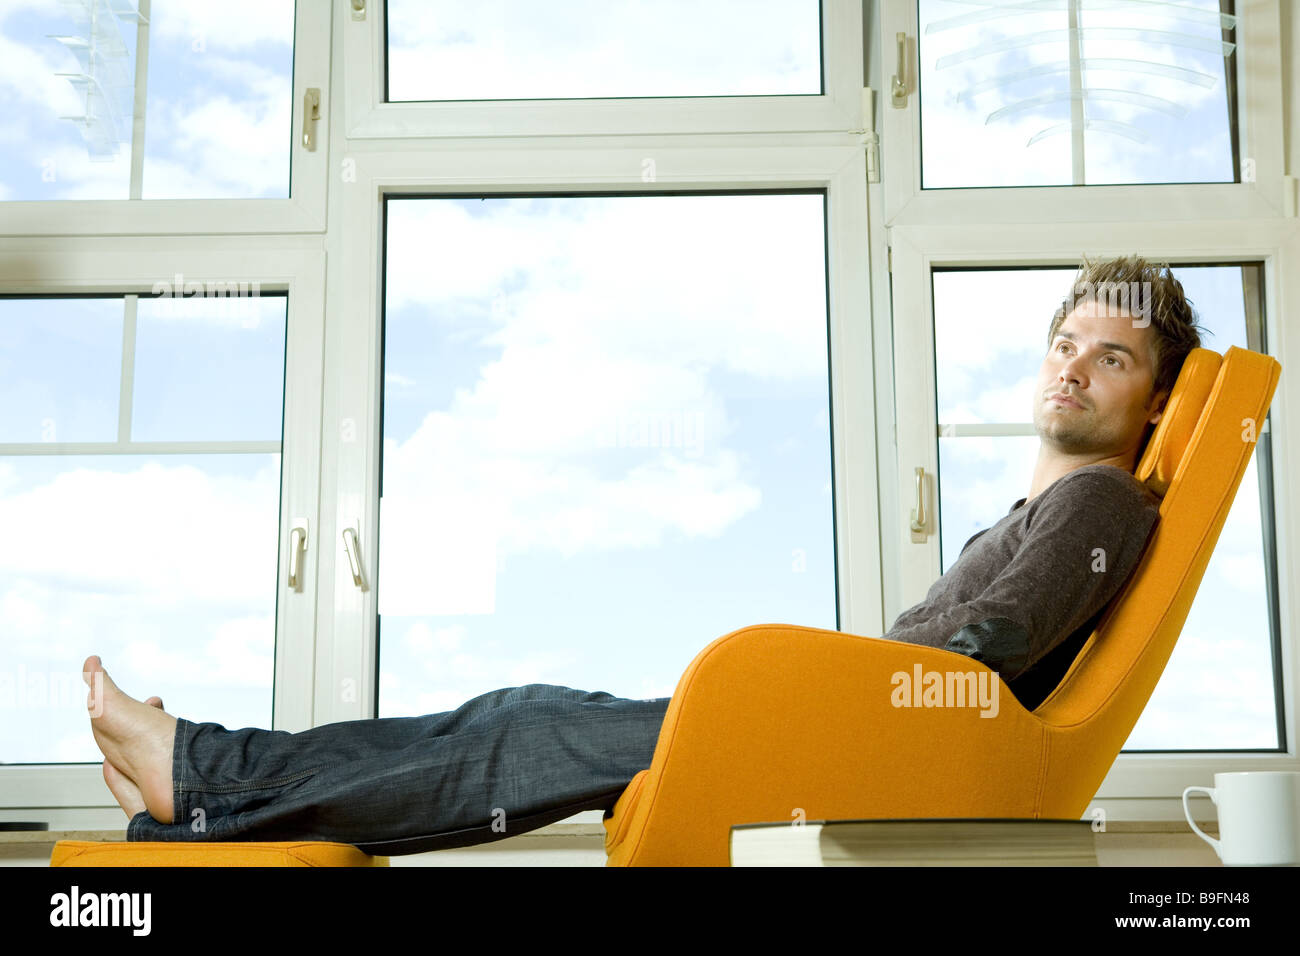 Man Young Chairs Relaxing At The Side People 20 30 Years Living Room Stock Photo 23088136 Alamy